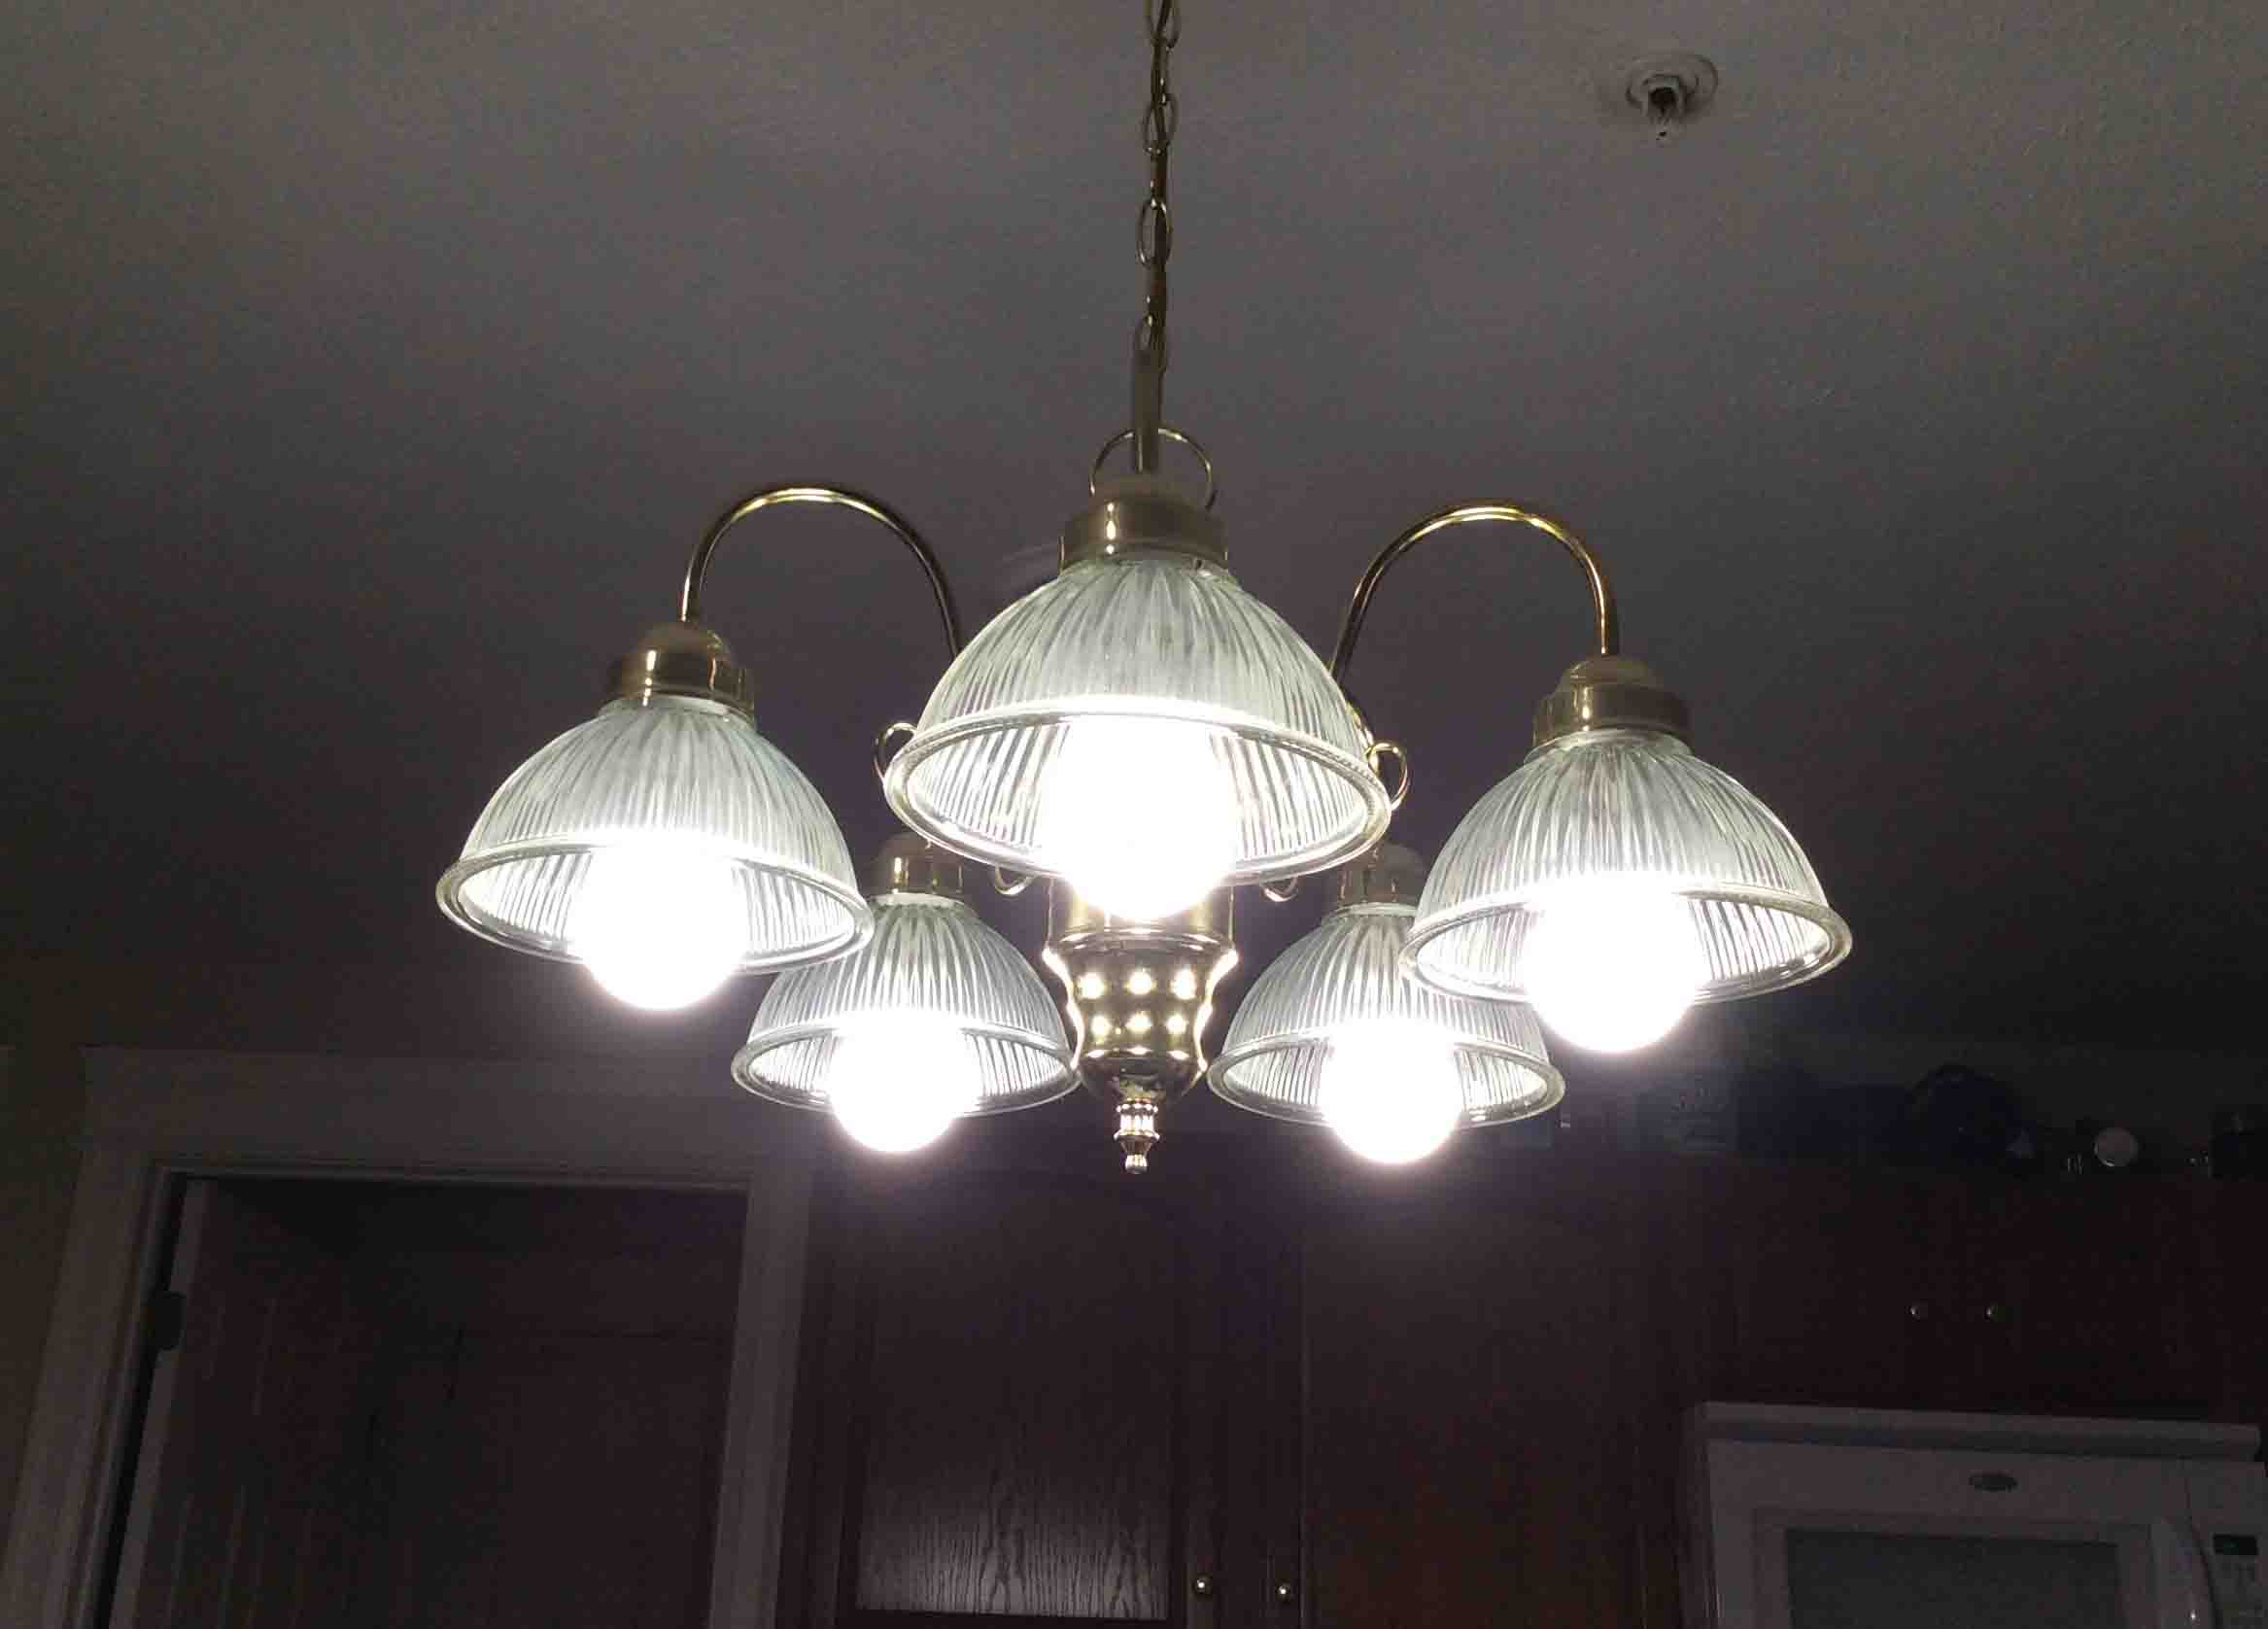 lights boxes light edison junction hanging index reclaimed img diy lumber unmaintained placing chandelier wiring bulb